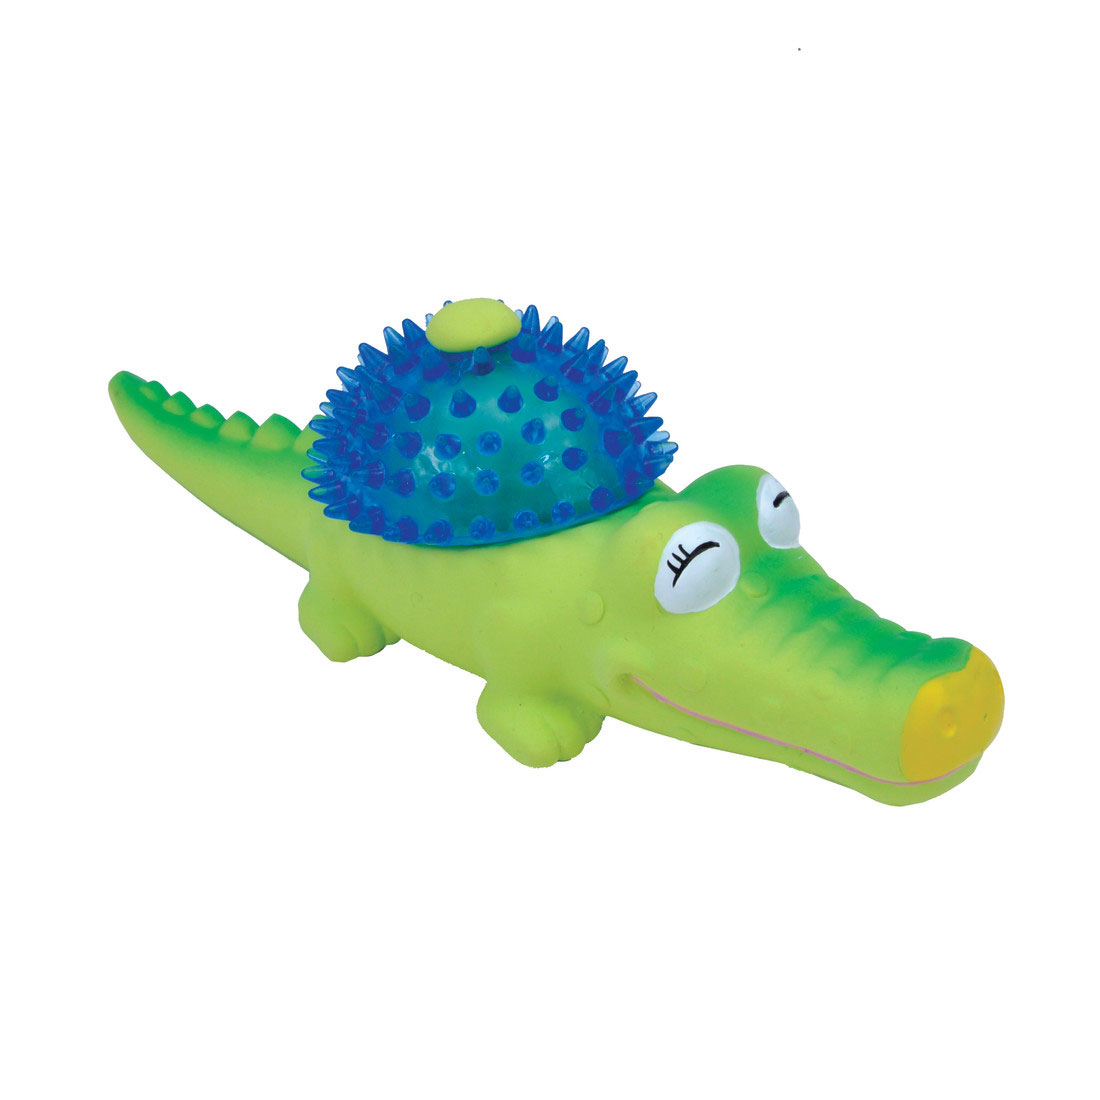 Coastal Pet Li'l Pals Latex & TPR Alligator Dog Toy